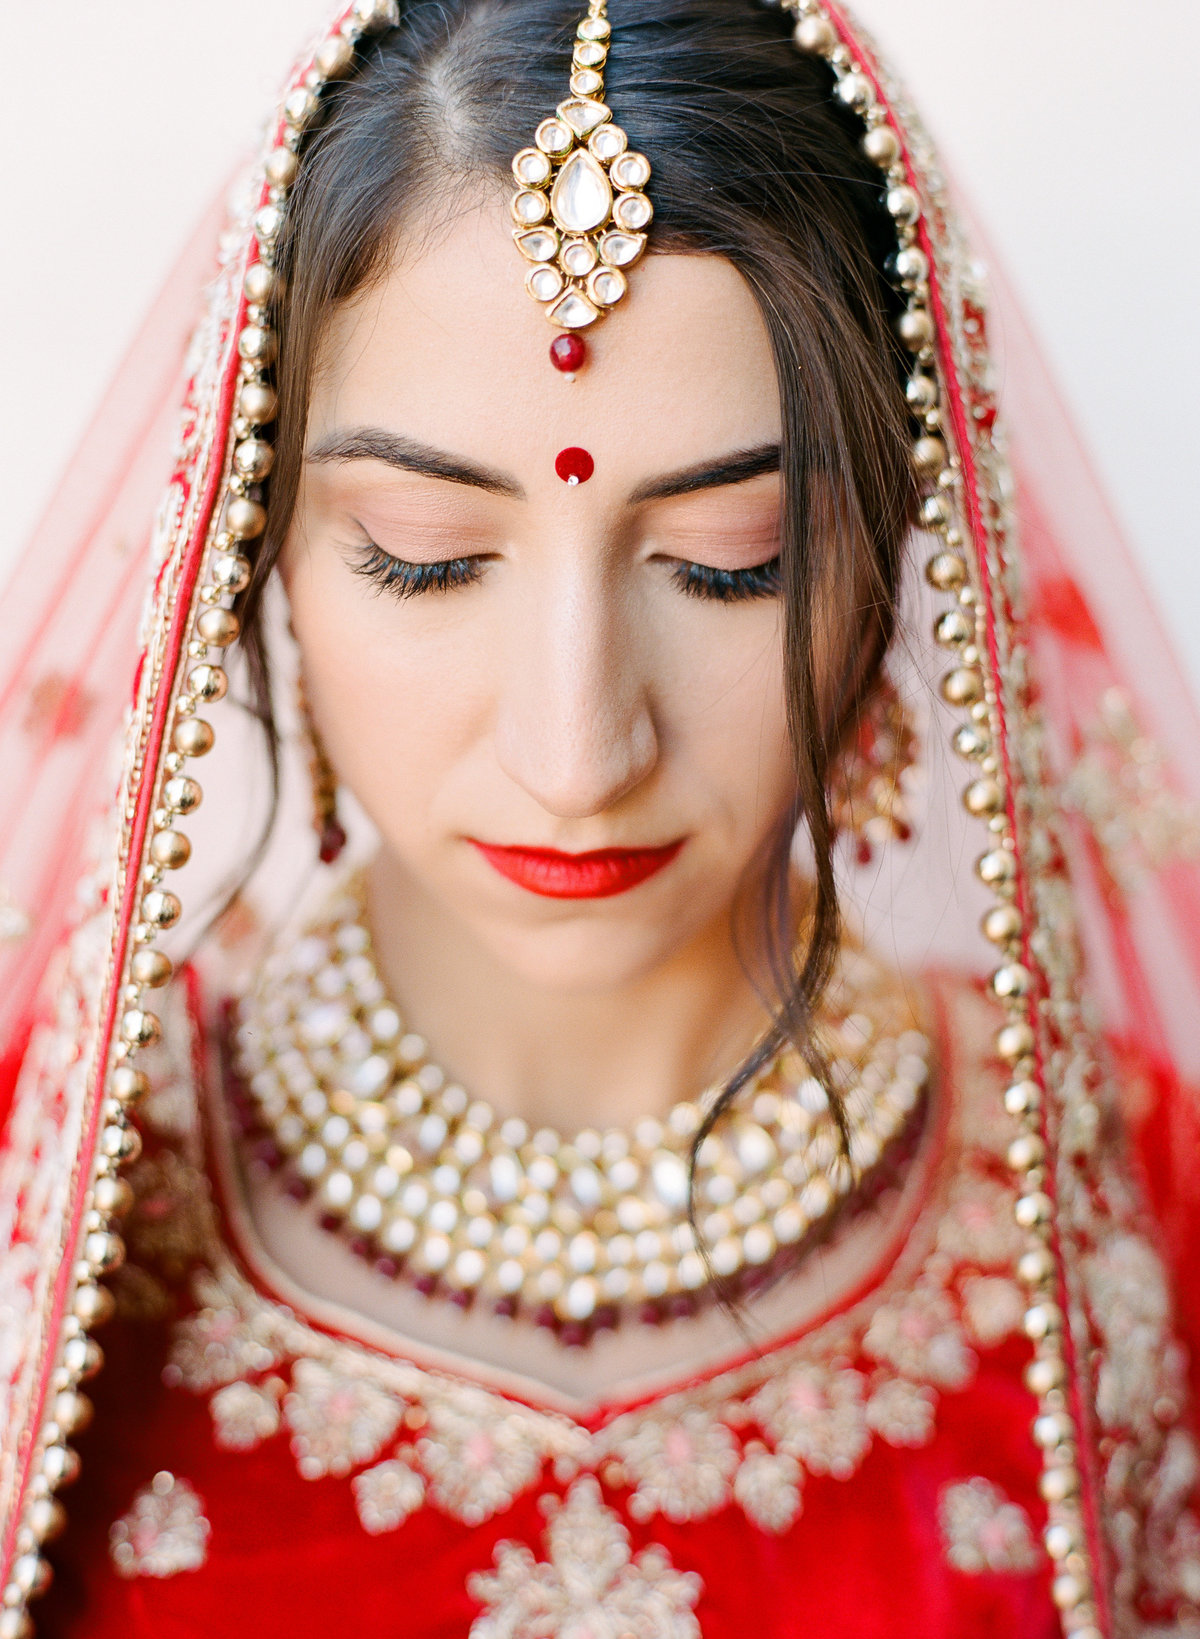 sasha-aneesh-wedding-bride-groom-indian-49